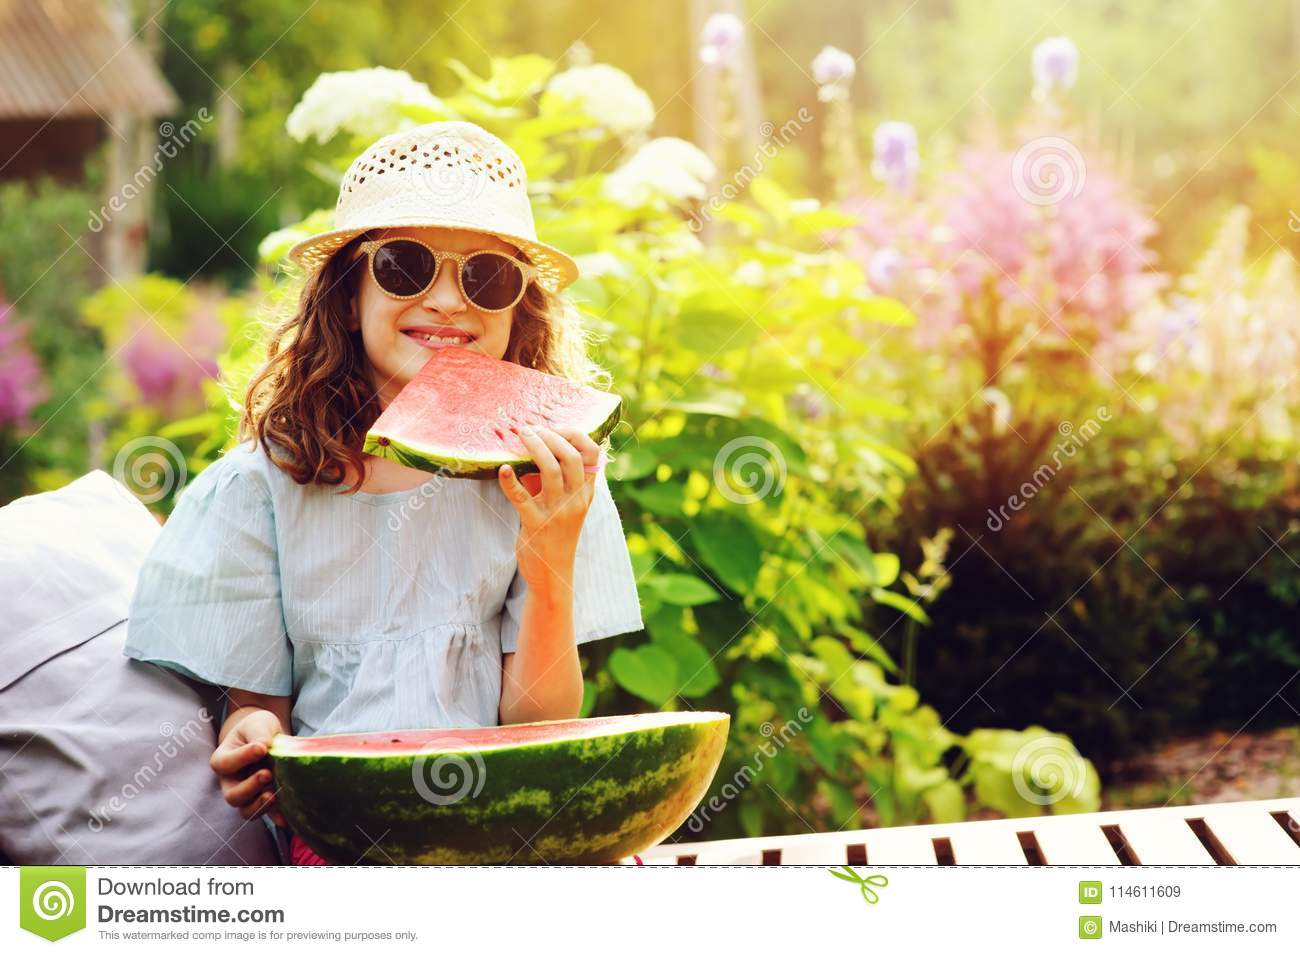 42cce6e58 Summer Happy Child Girl Eating Watermelon Outdoor On Vacation Stock ...